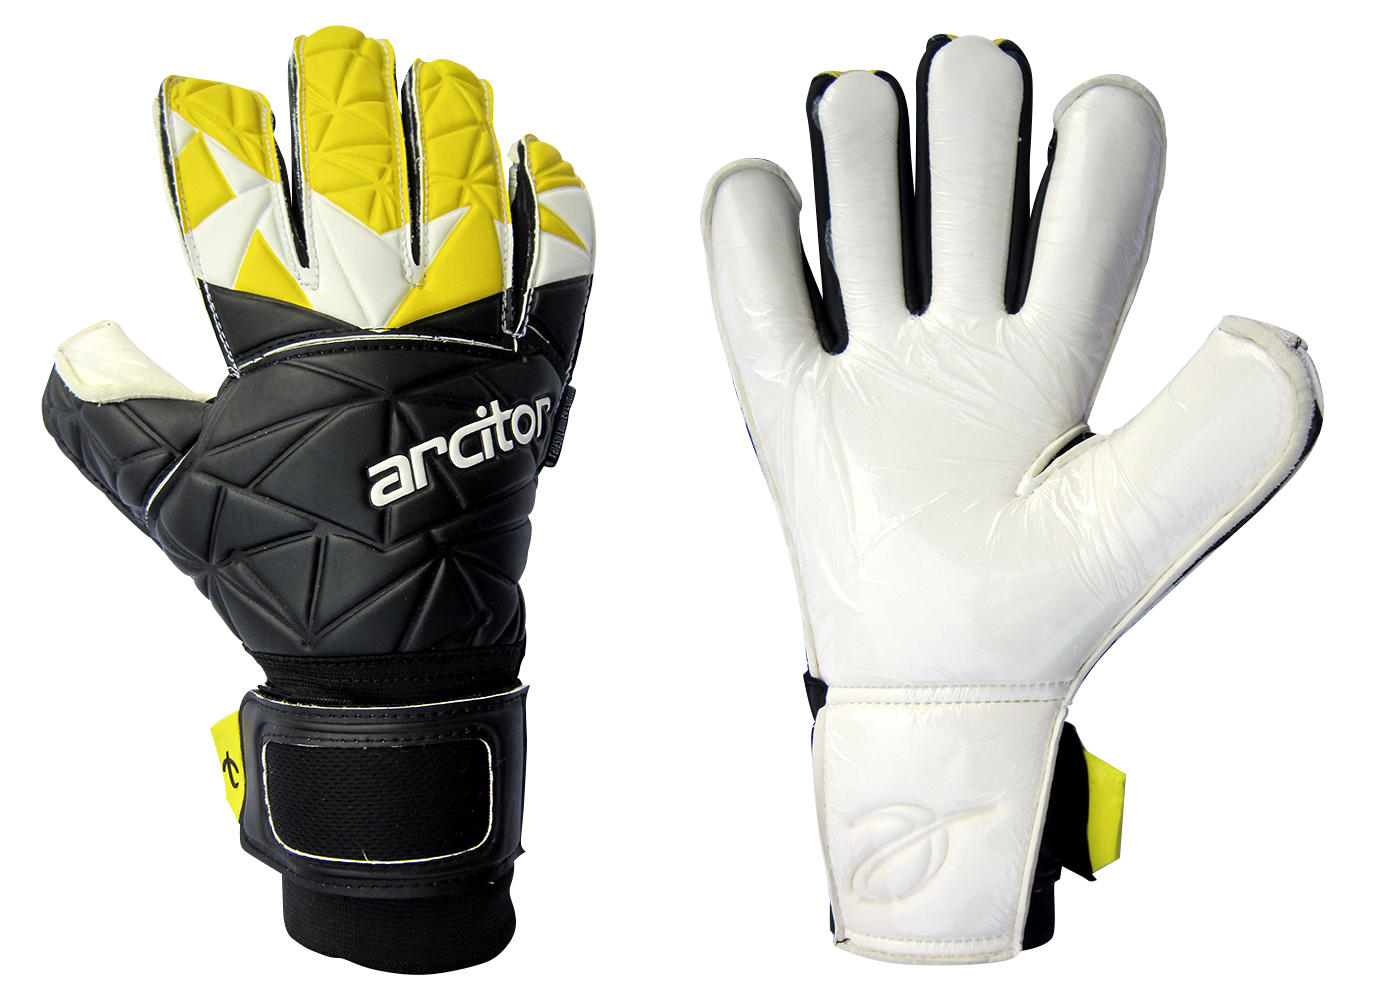 extended palm goalkeeper gloves